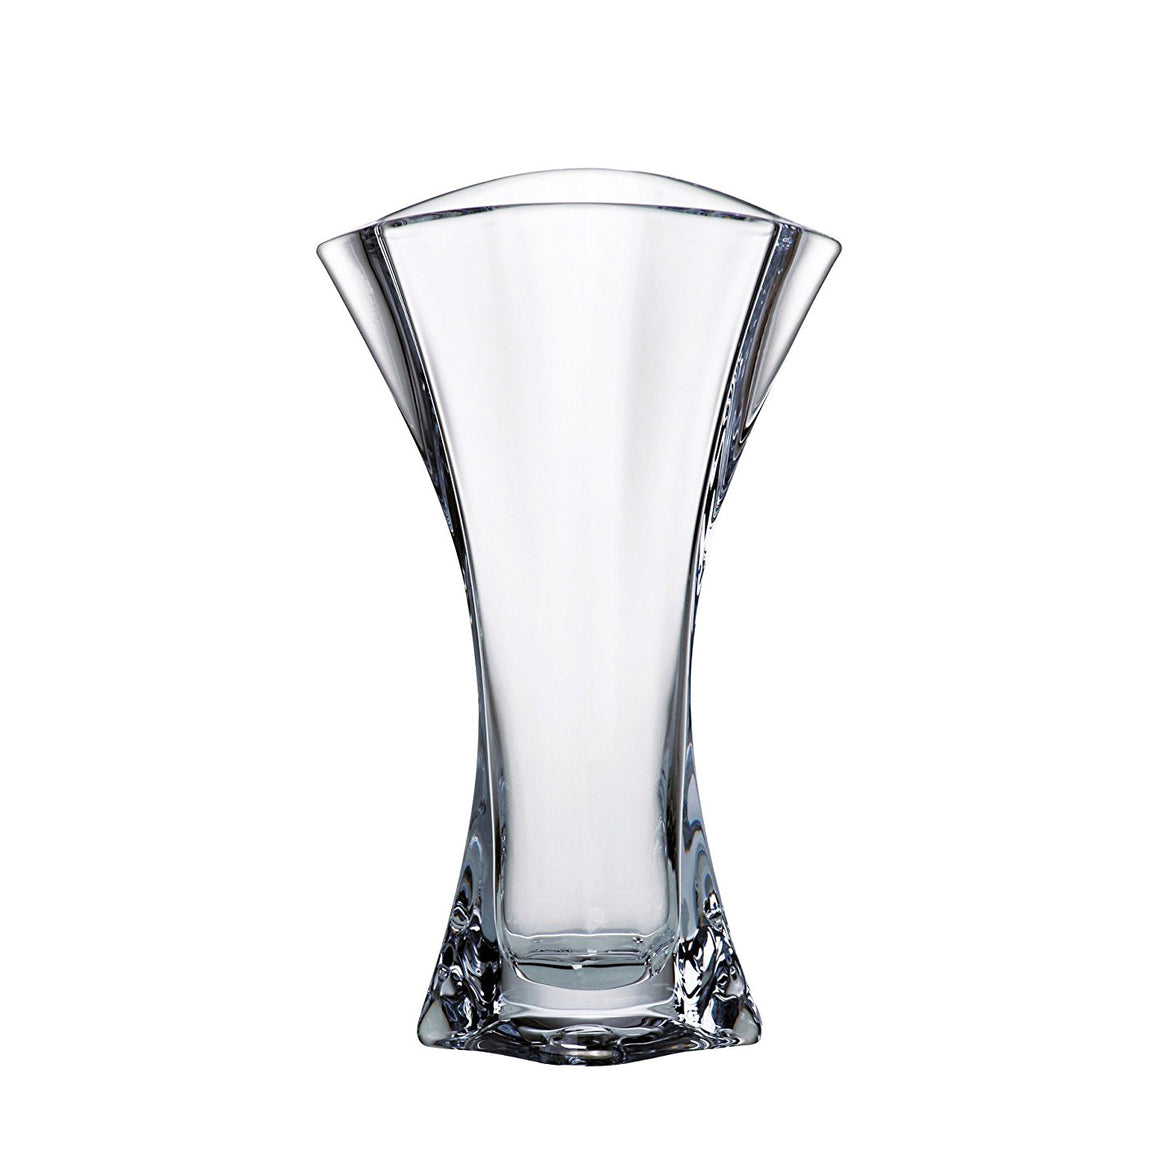 Triumph Glass Vase - The Crystal Wonderland